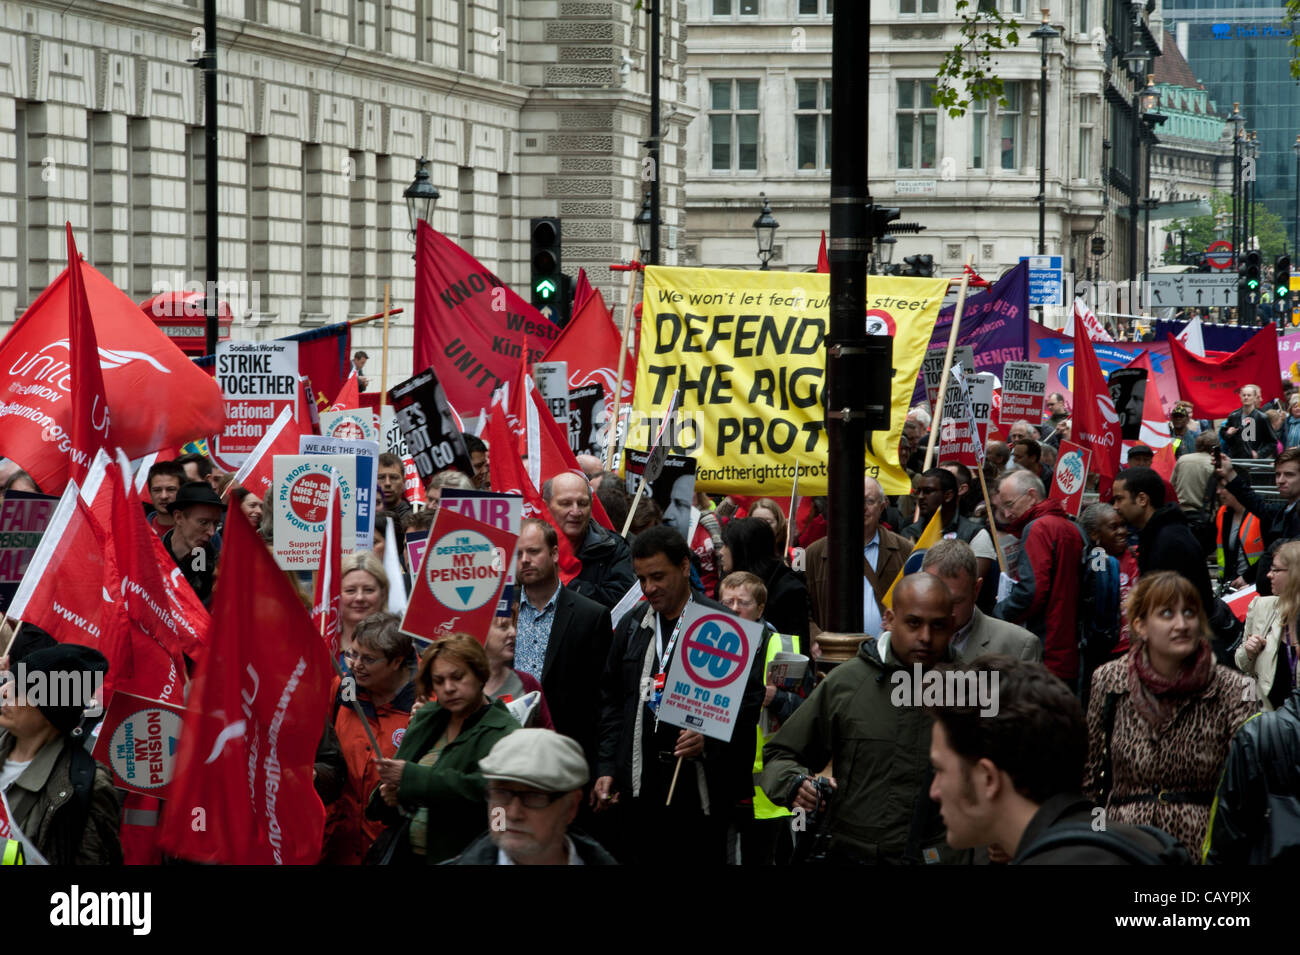 London, UK, 10th May 2012 - Public sector workers hold a march and rally in central London on public sector pensions - Stock Image